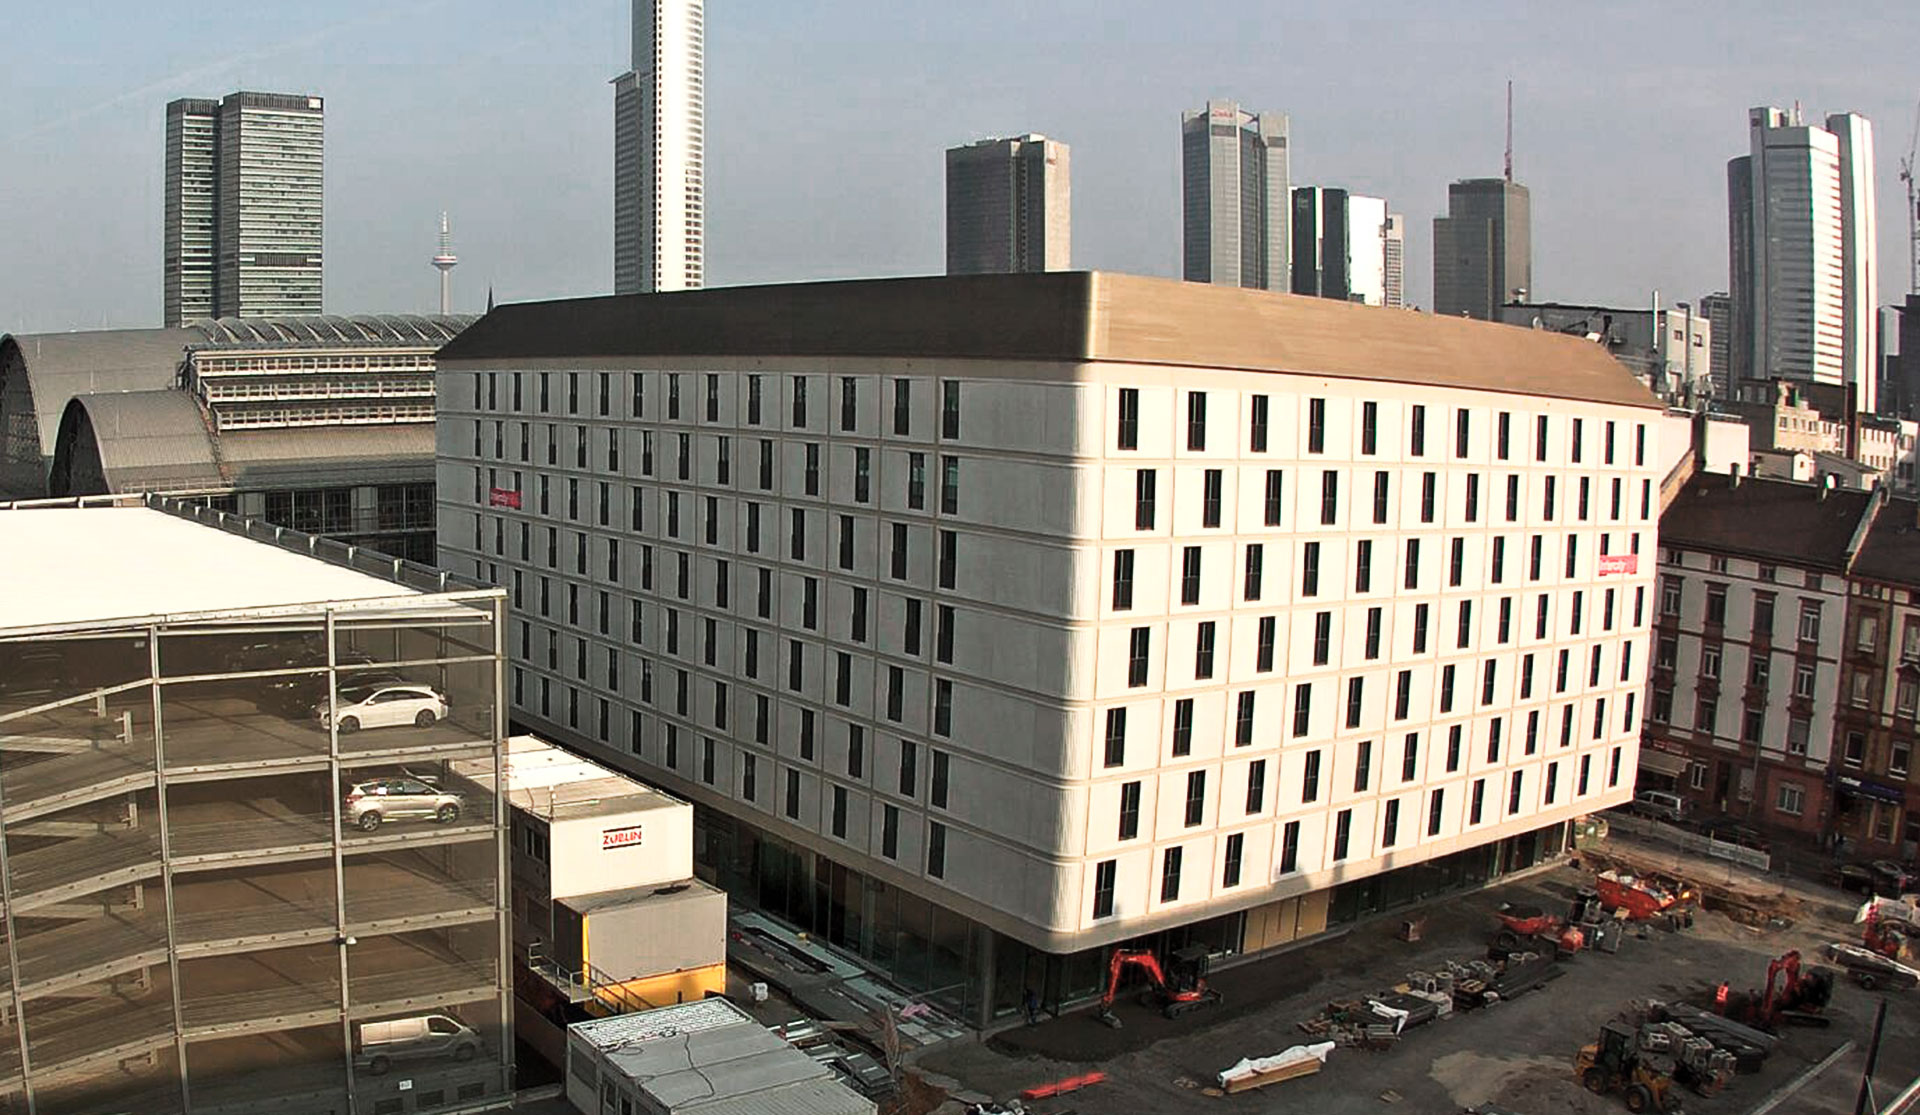 Intercity Hotel - Frankfurt (DE), November 2018 - Opening 2018